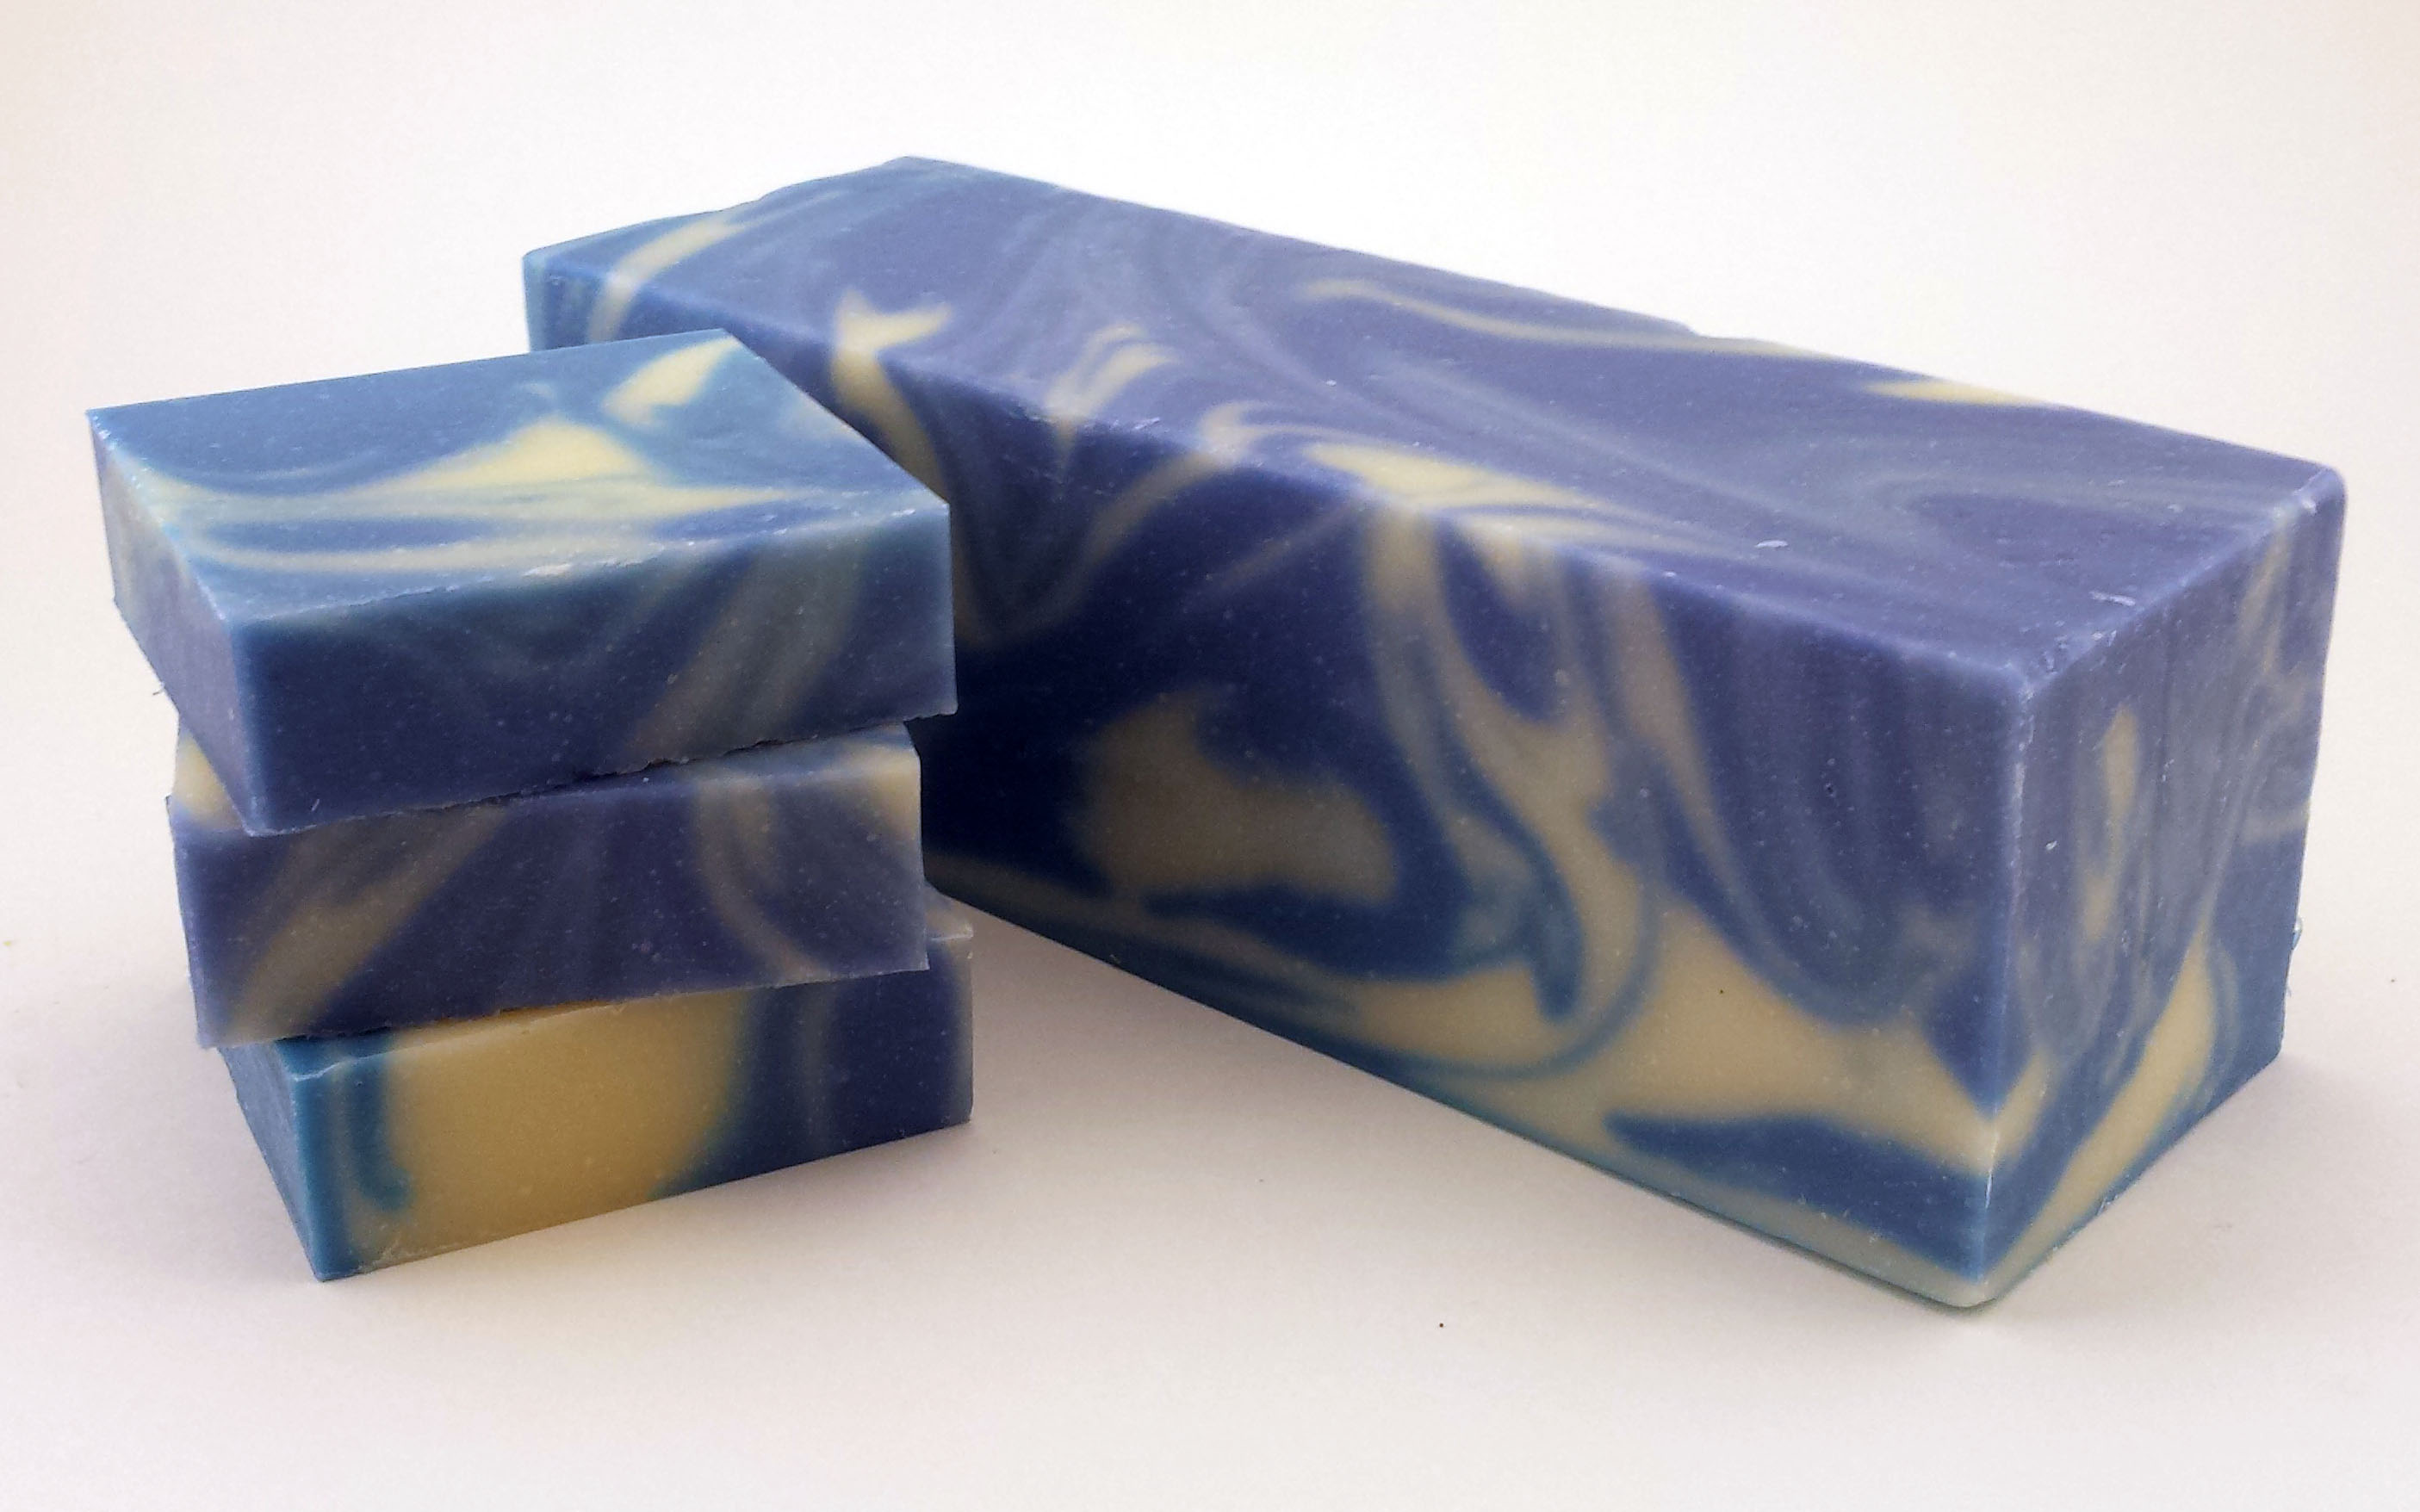 Wholesale Soap Loaves - Best Online Selection!